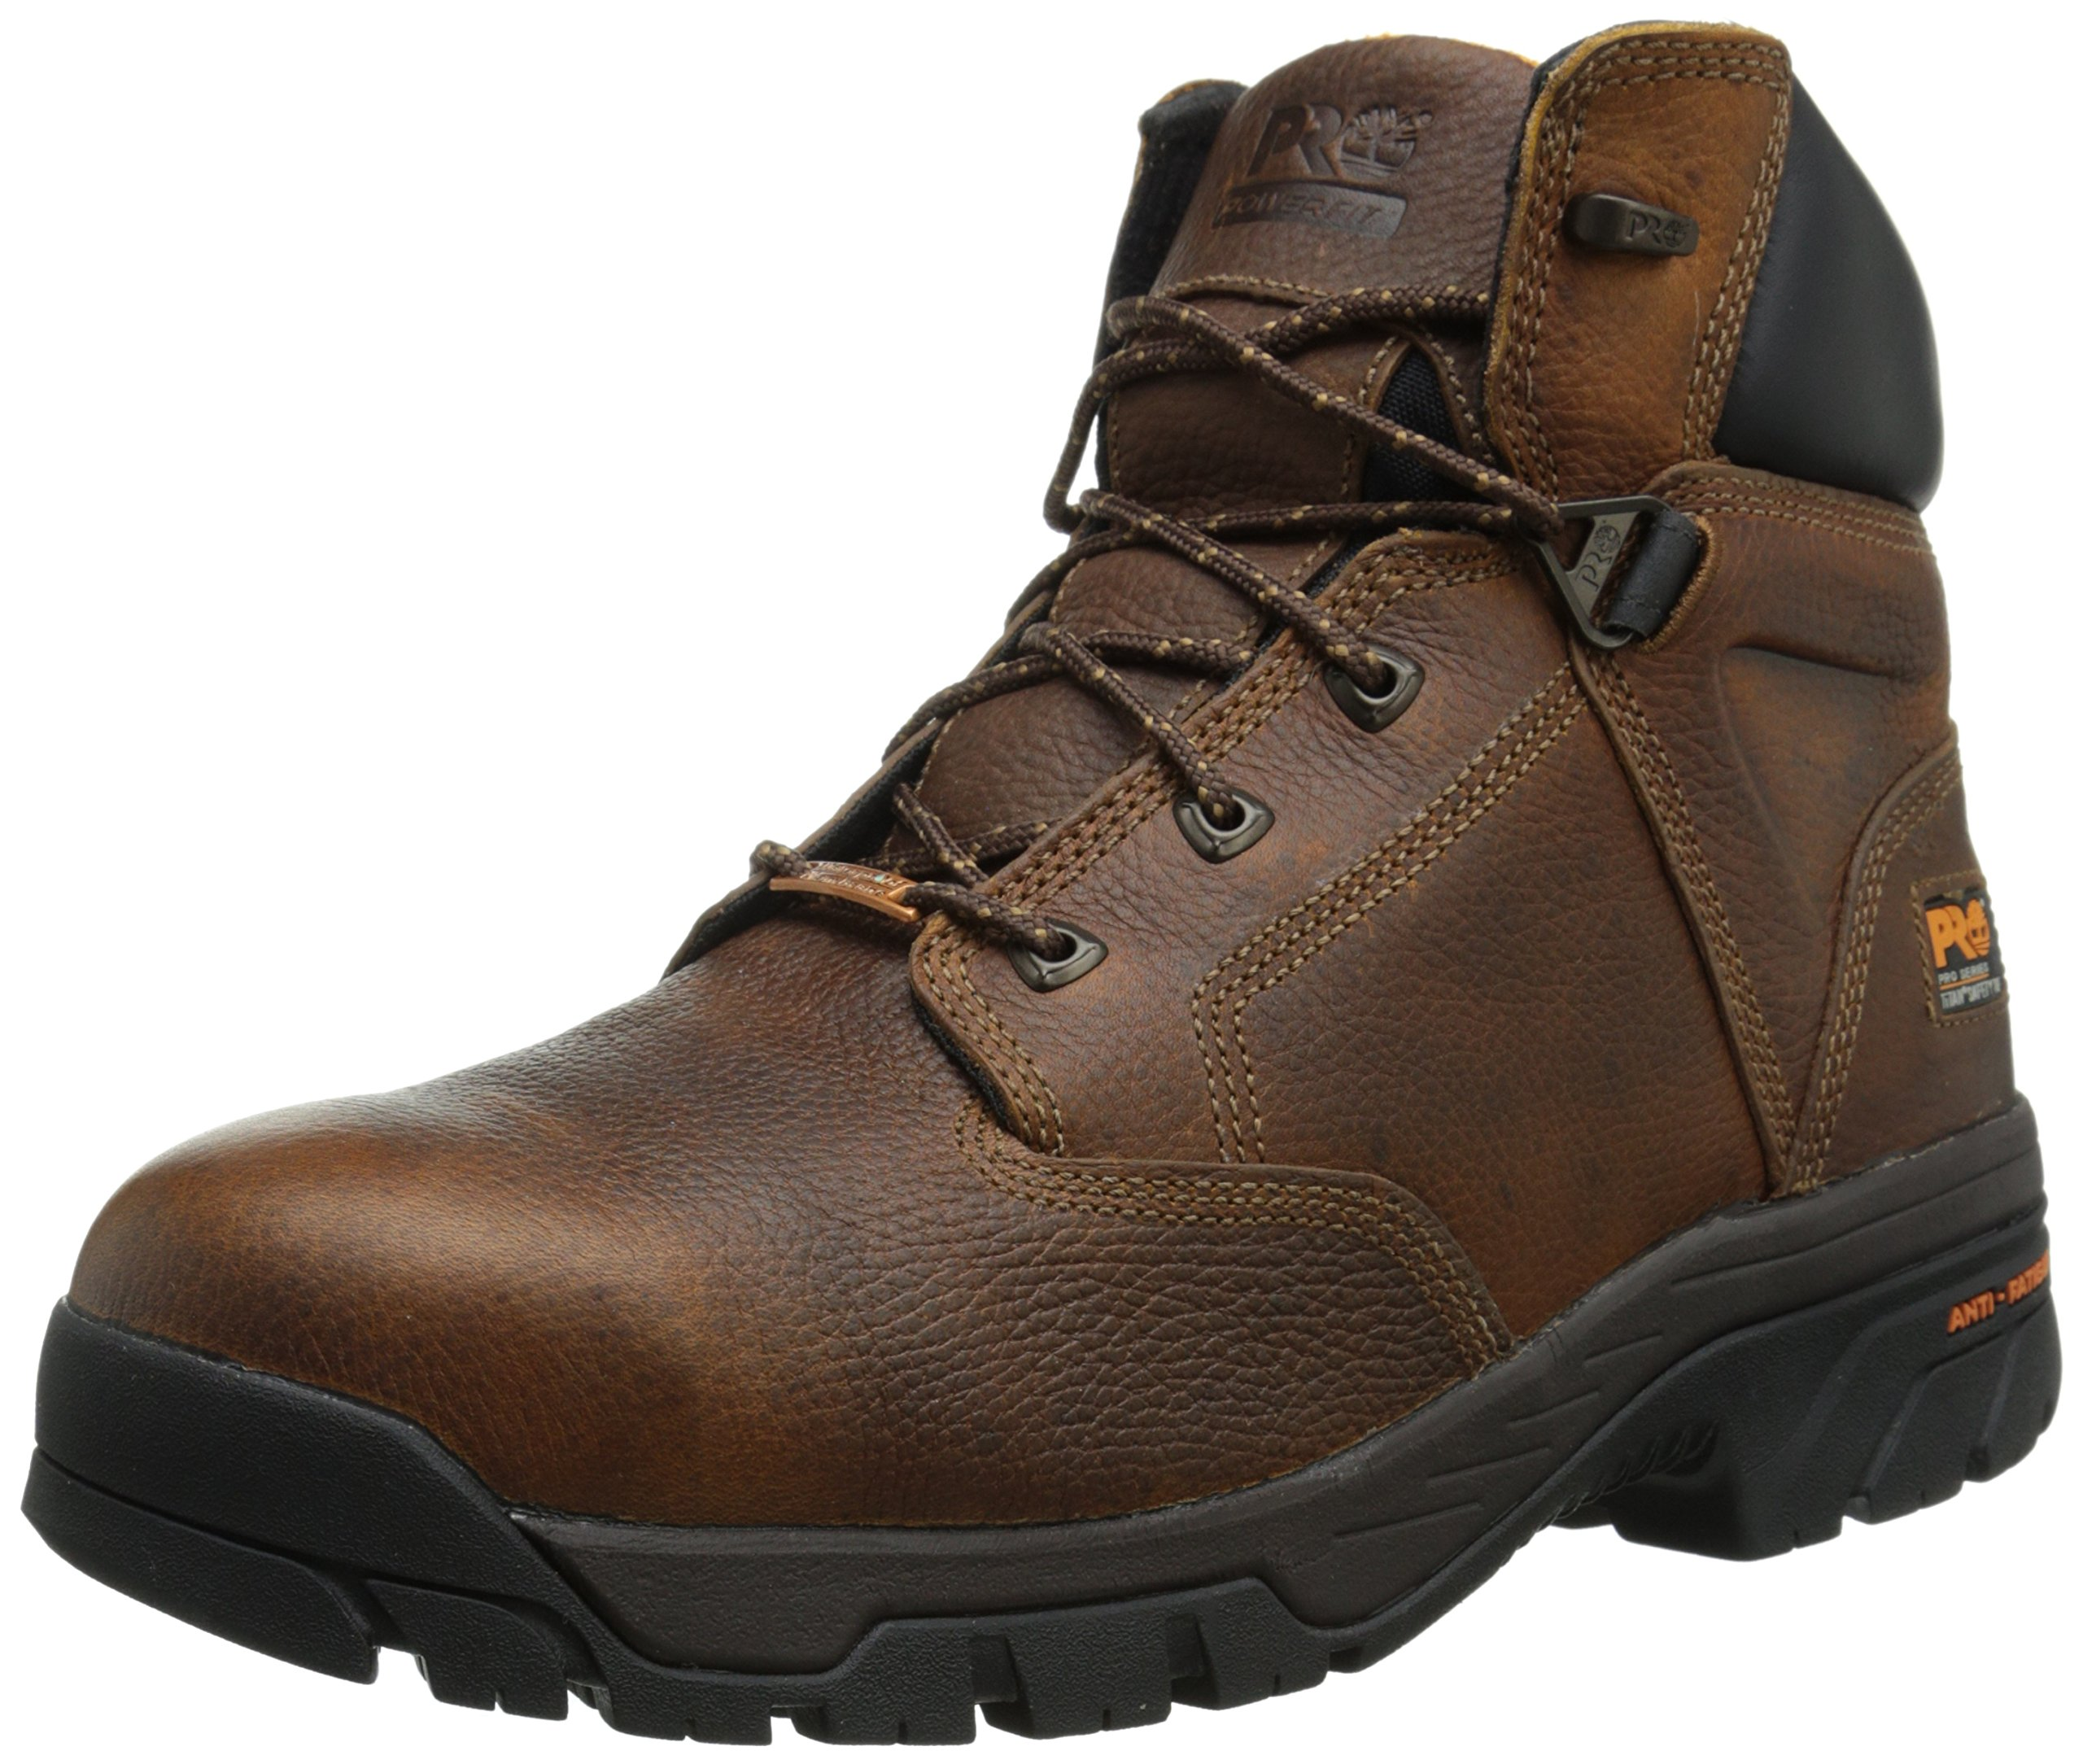 Timberland PRO Men's 6 Inches Helix Safety Boot,Brown,10.5 M US